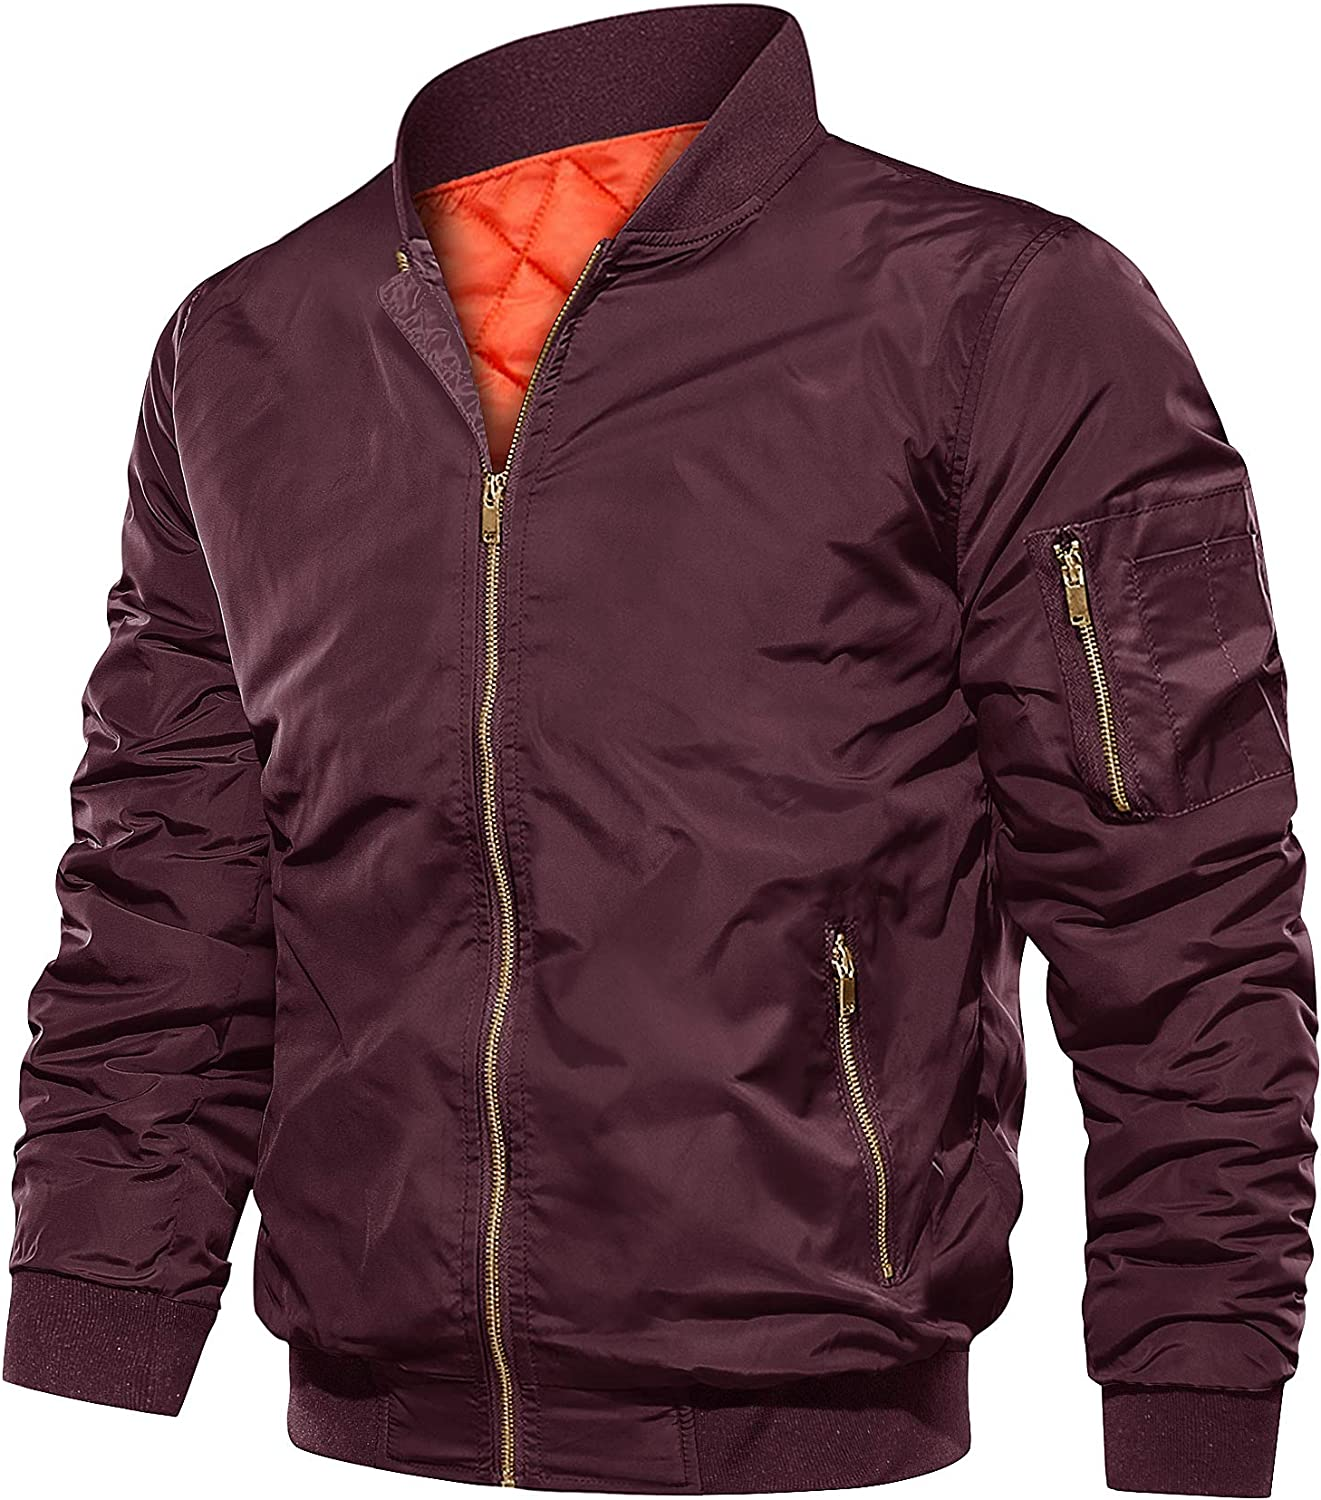 Mens Store Bomber Jacket Fall Winter Lightweight up Padded Puffer Super popular specialty store Warm